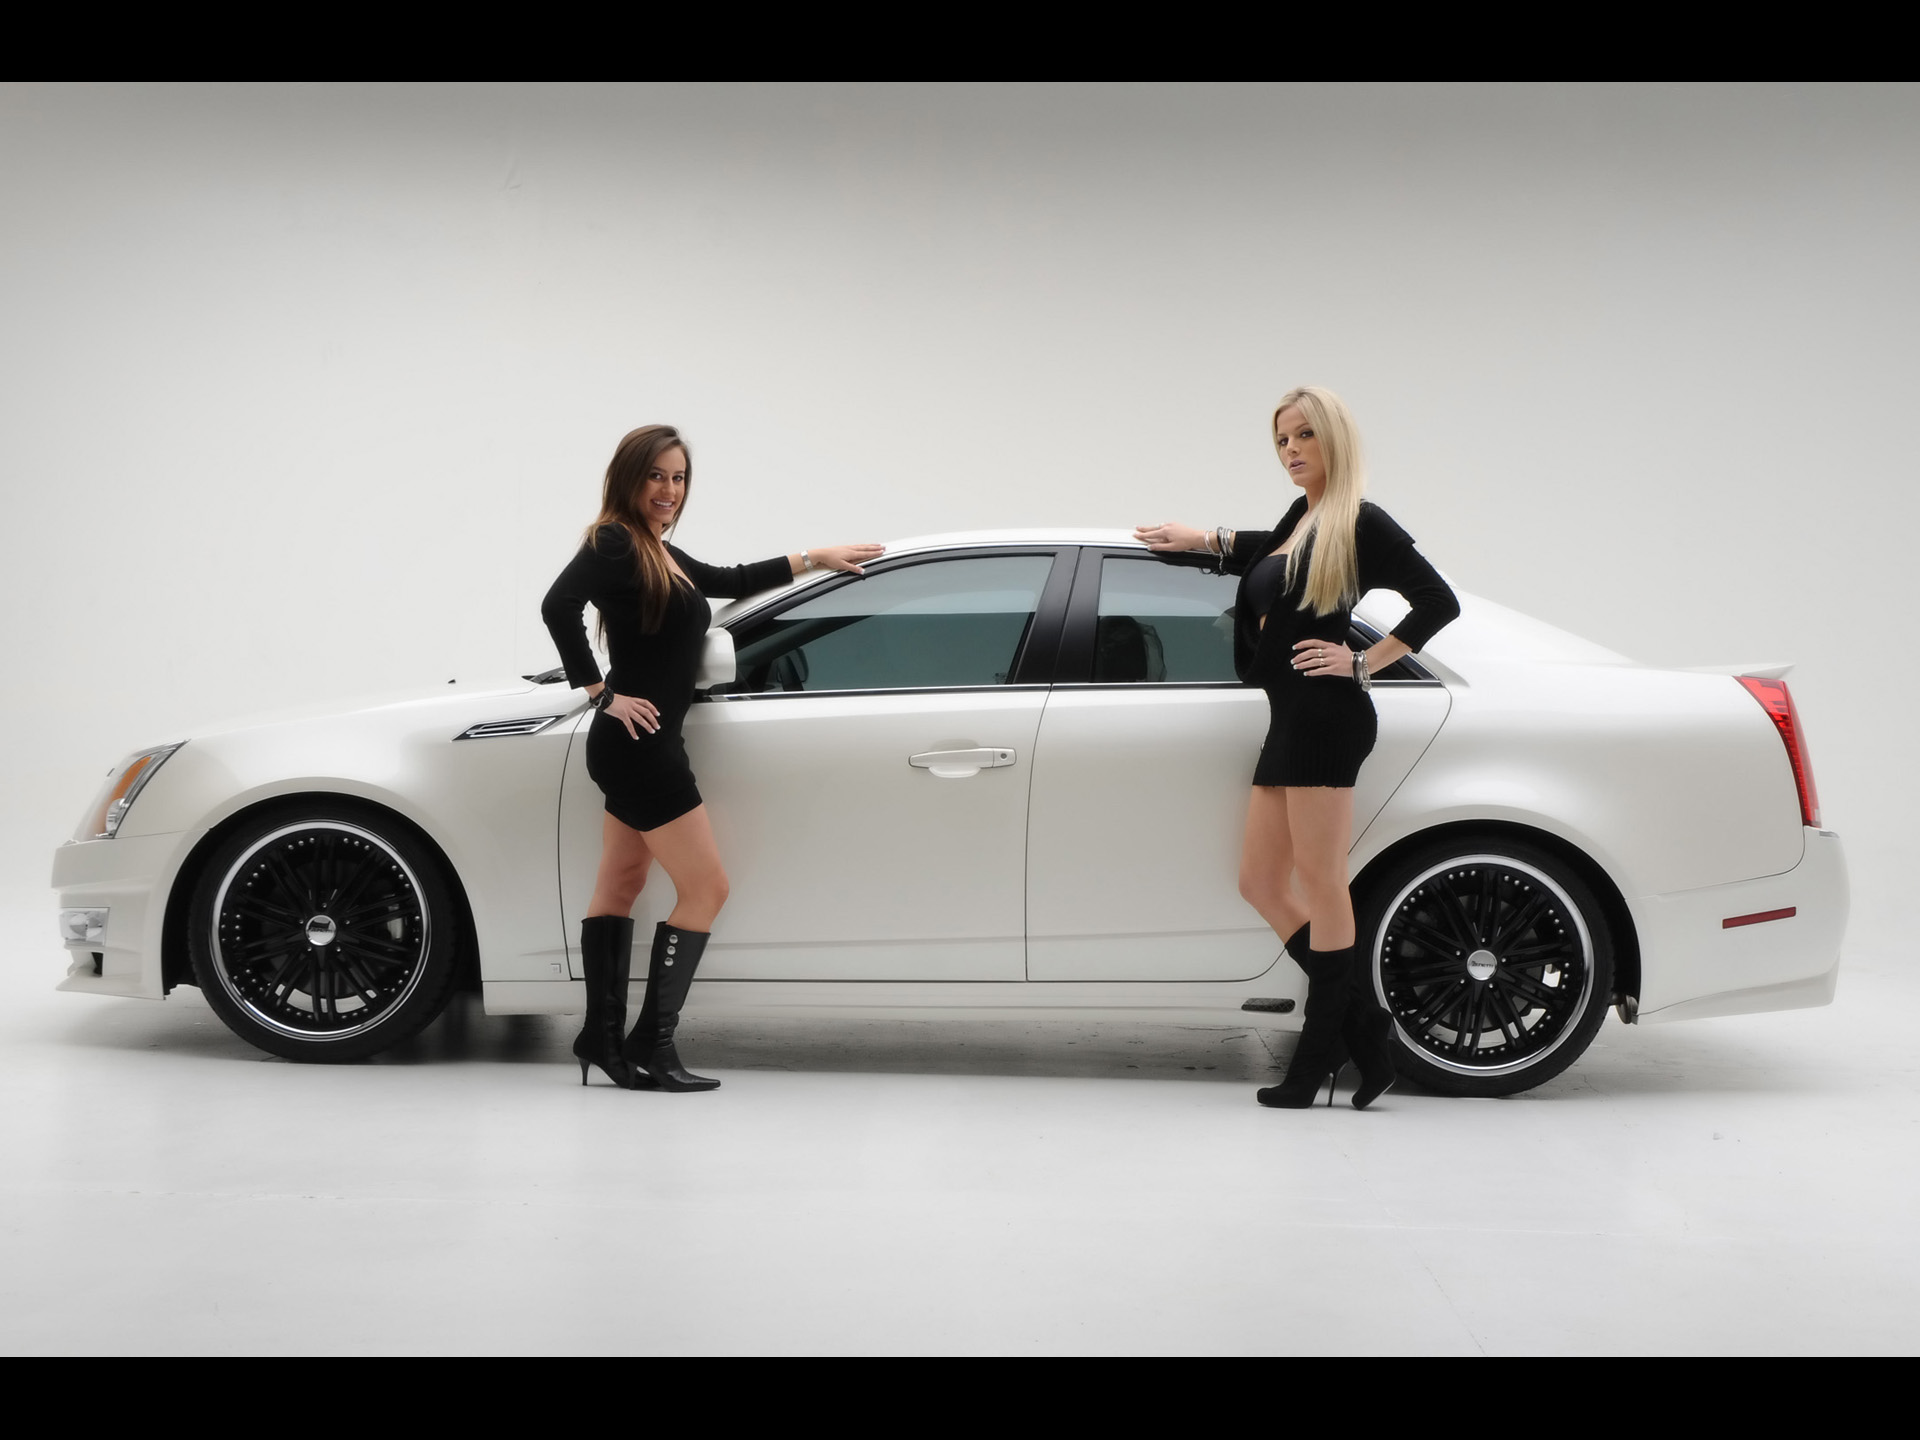 Hot girls and Cadillac CTS-V